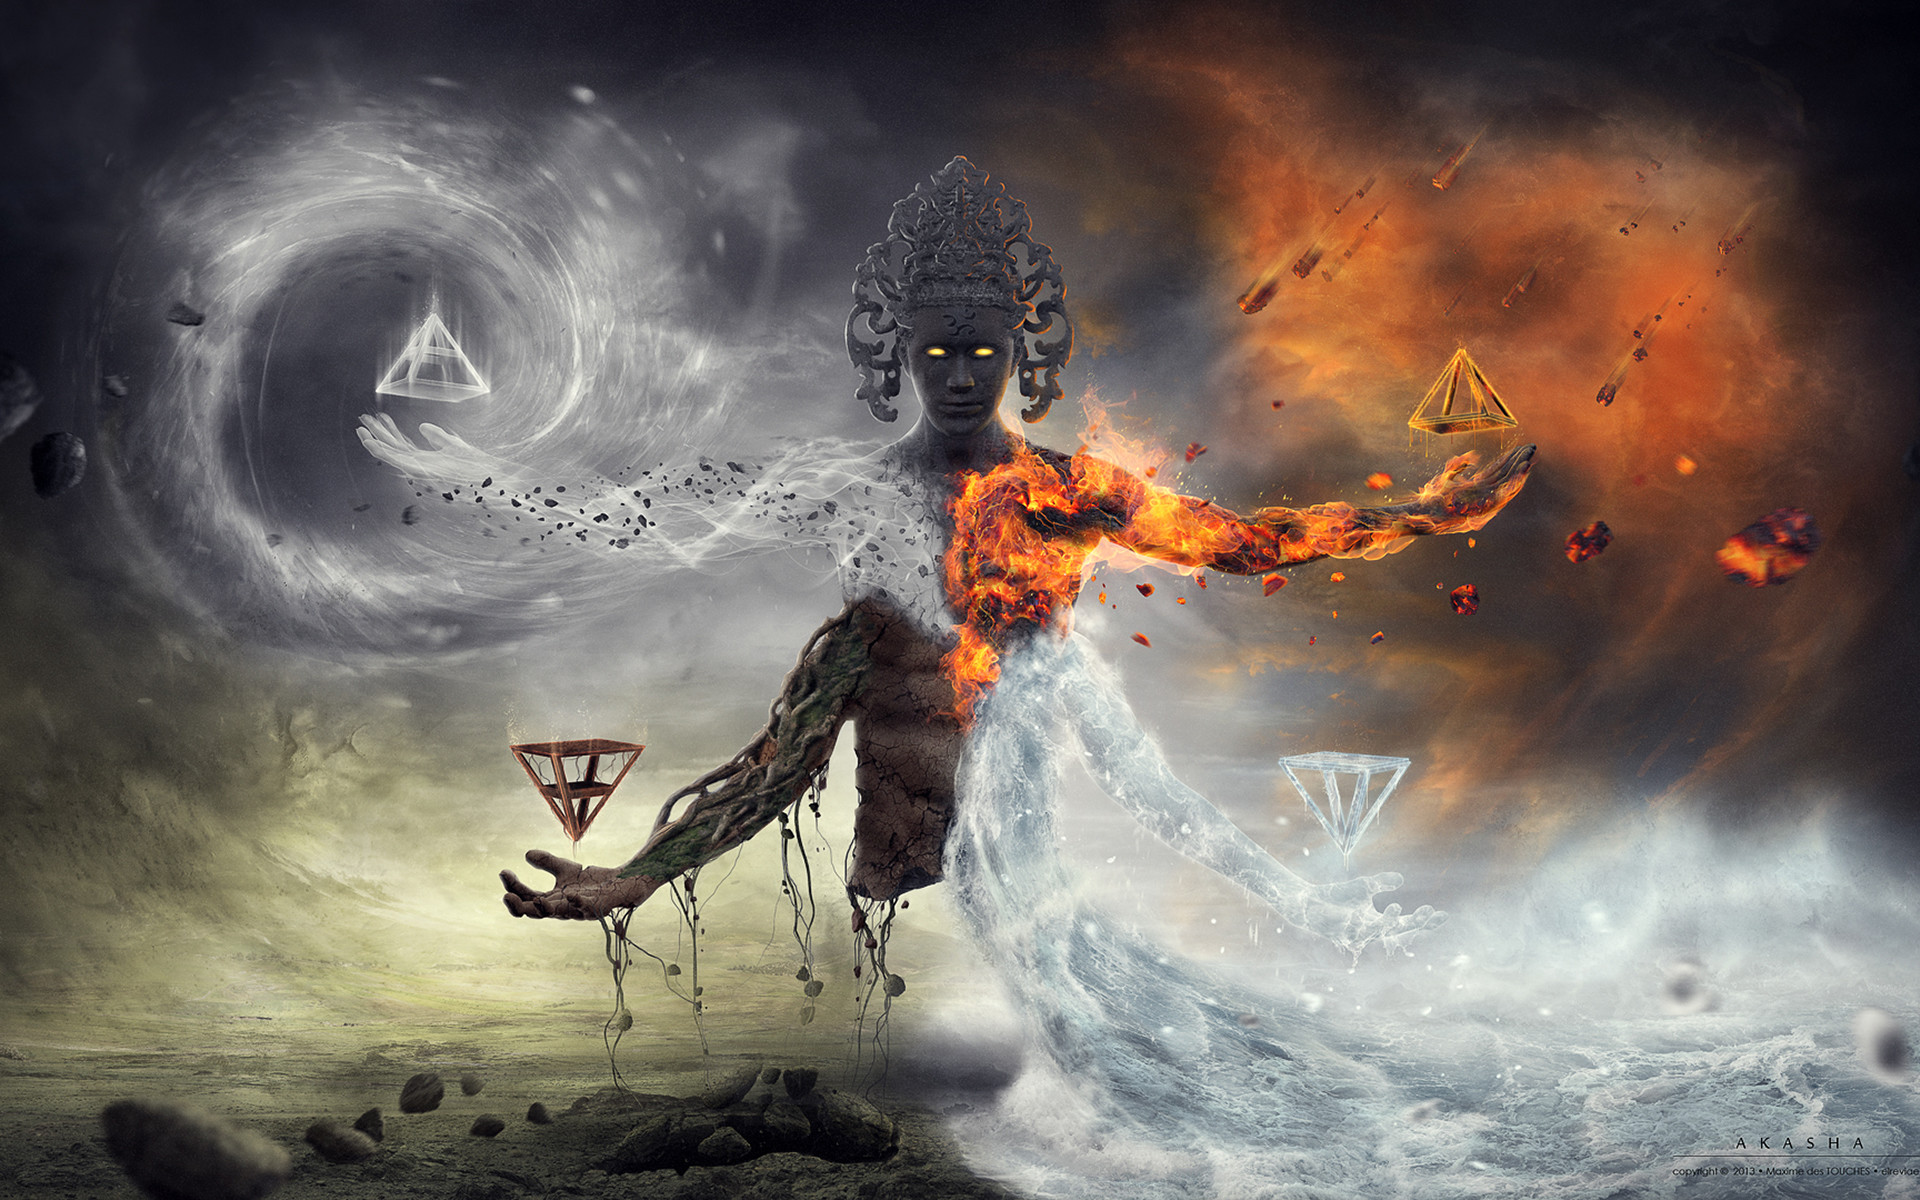 Water, Air, Fire, Earth, Ether, Five Fantasy Elements